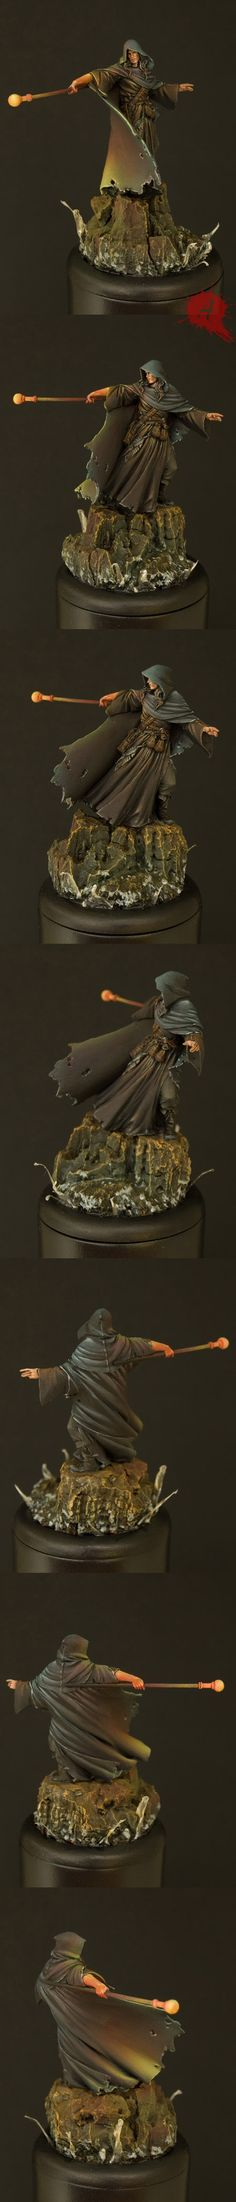 Nocturna Models -The Sorcerer boxart V#2. Painted by Javier Gonzalez aka Arsies